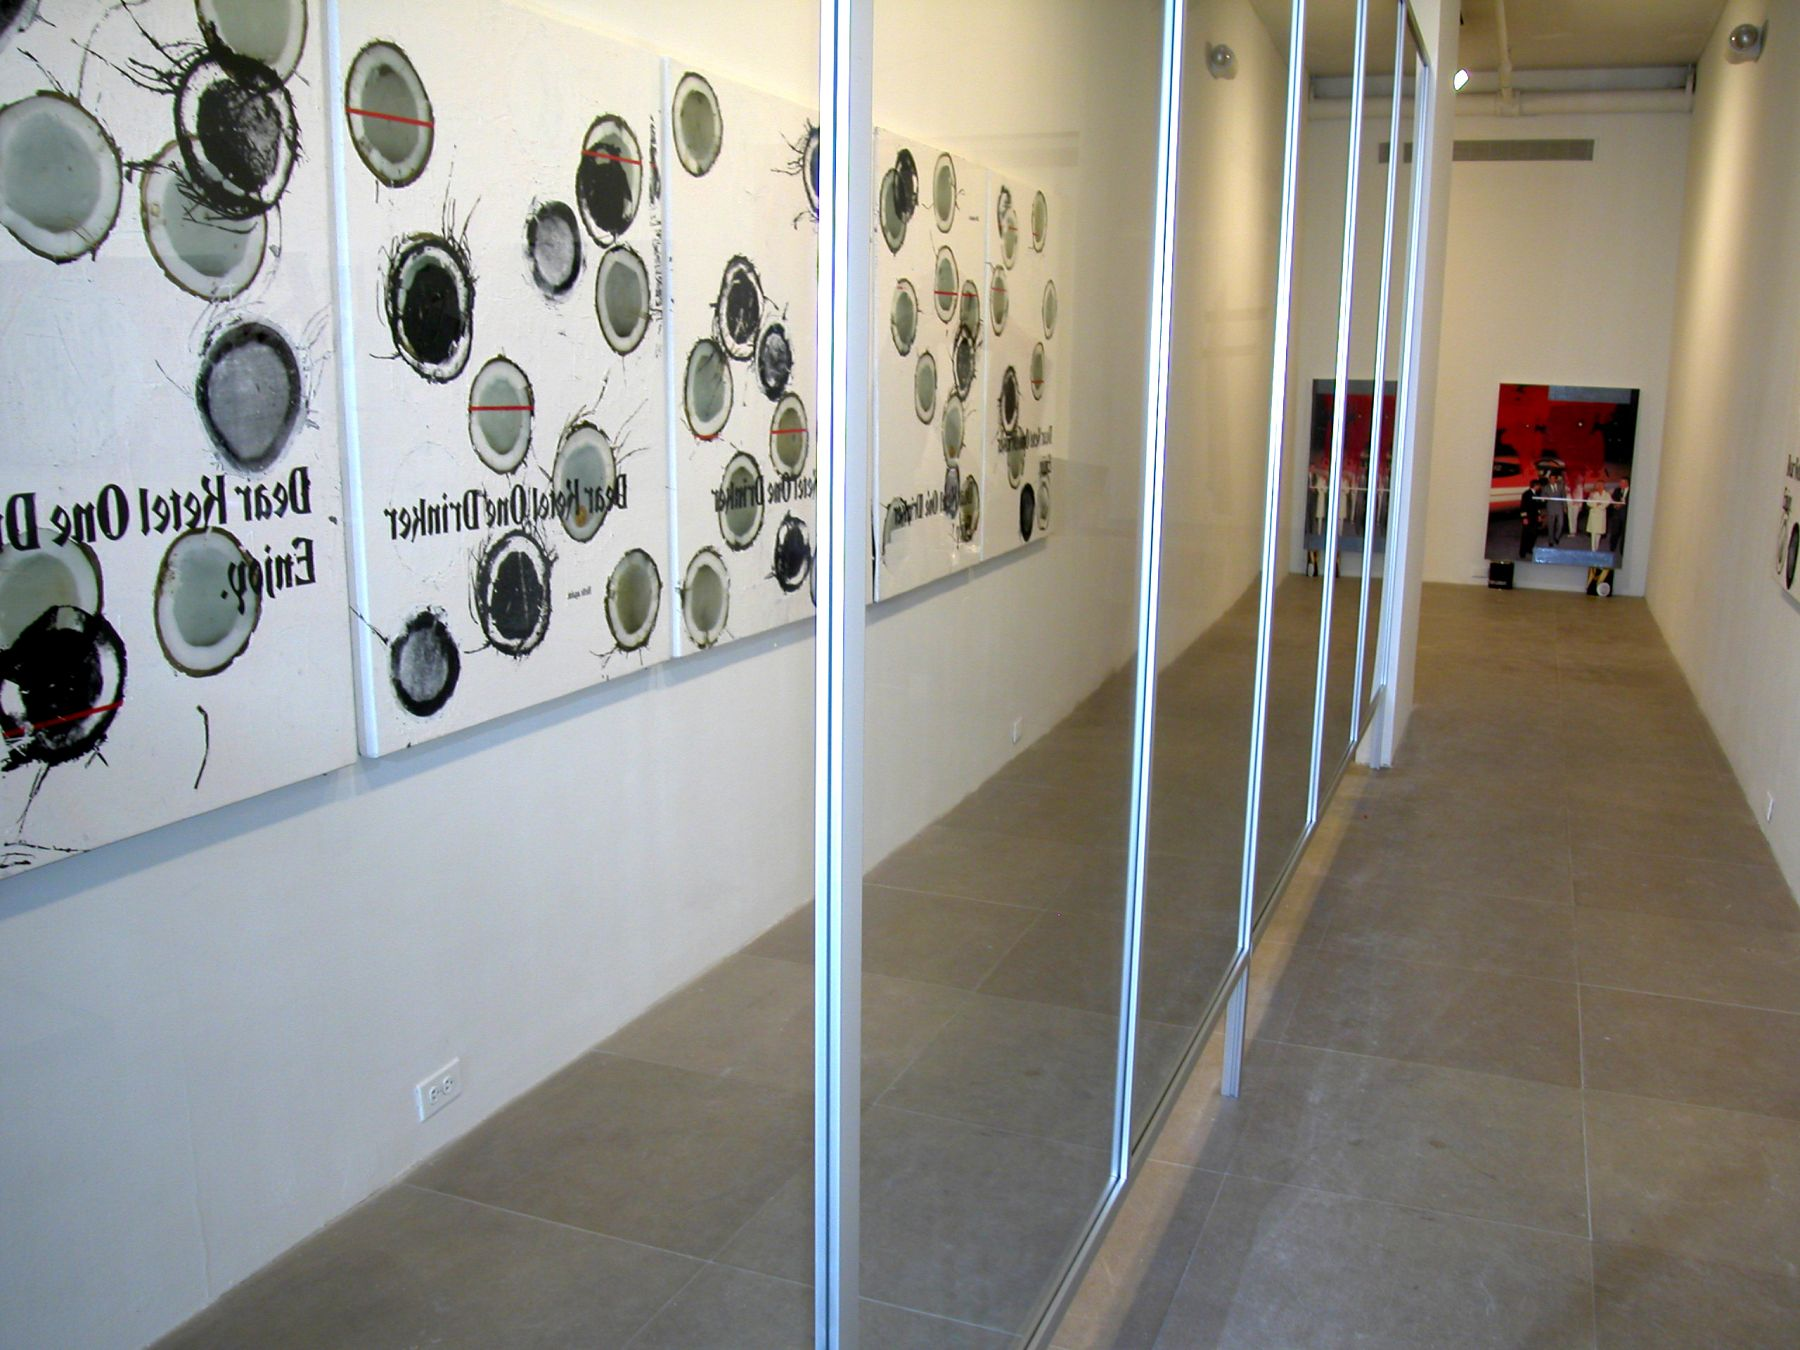 Coconut Corridor, 2005,  6 paintings, silkscreen and digital inkjet on canvas, reflective plexiglass screen,  paintings 48 x 36 inches, installation dimensions variable,  Installation view, Greene Naftali, New York, 2005